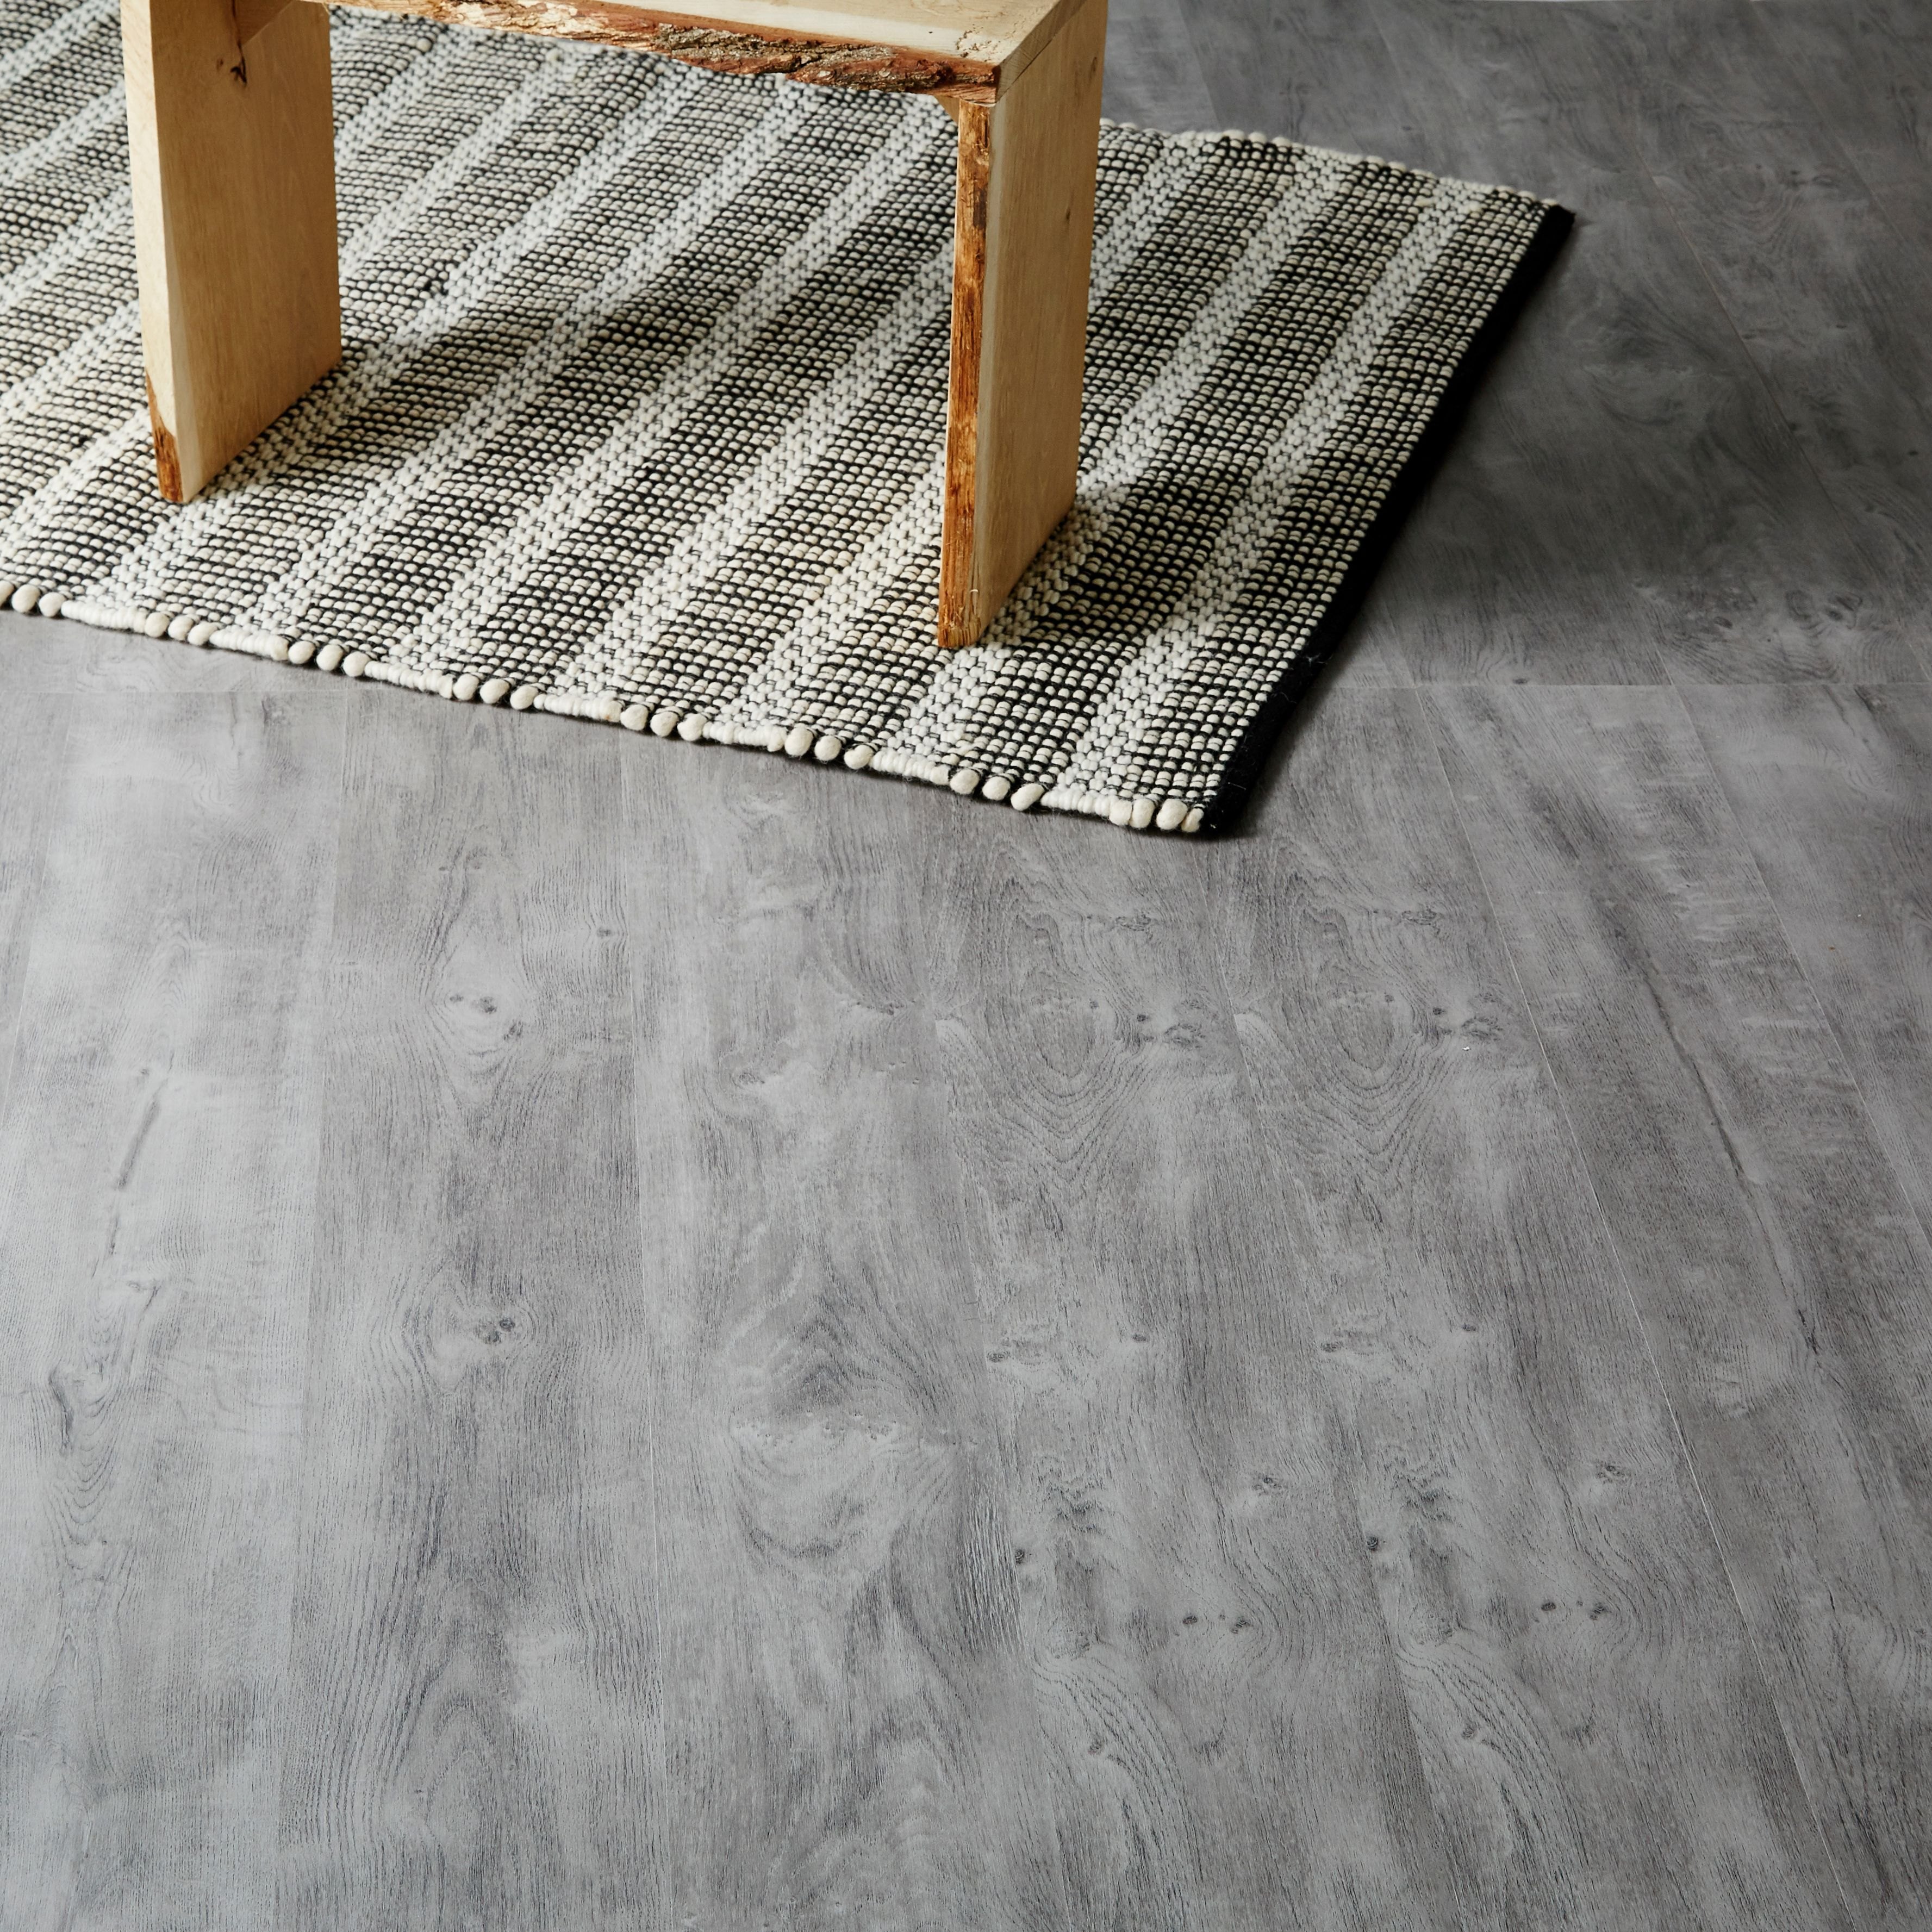 Caloundra Grey Oak Effect Laminate Flooring 2 467 M² Pack Departments Diy At B Q